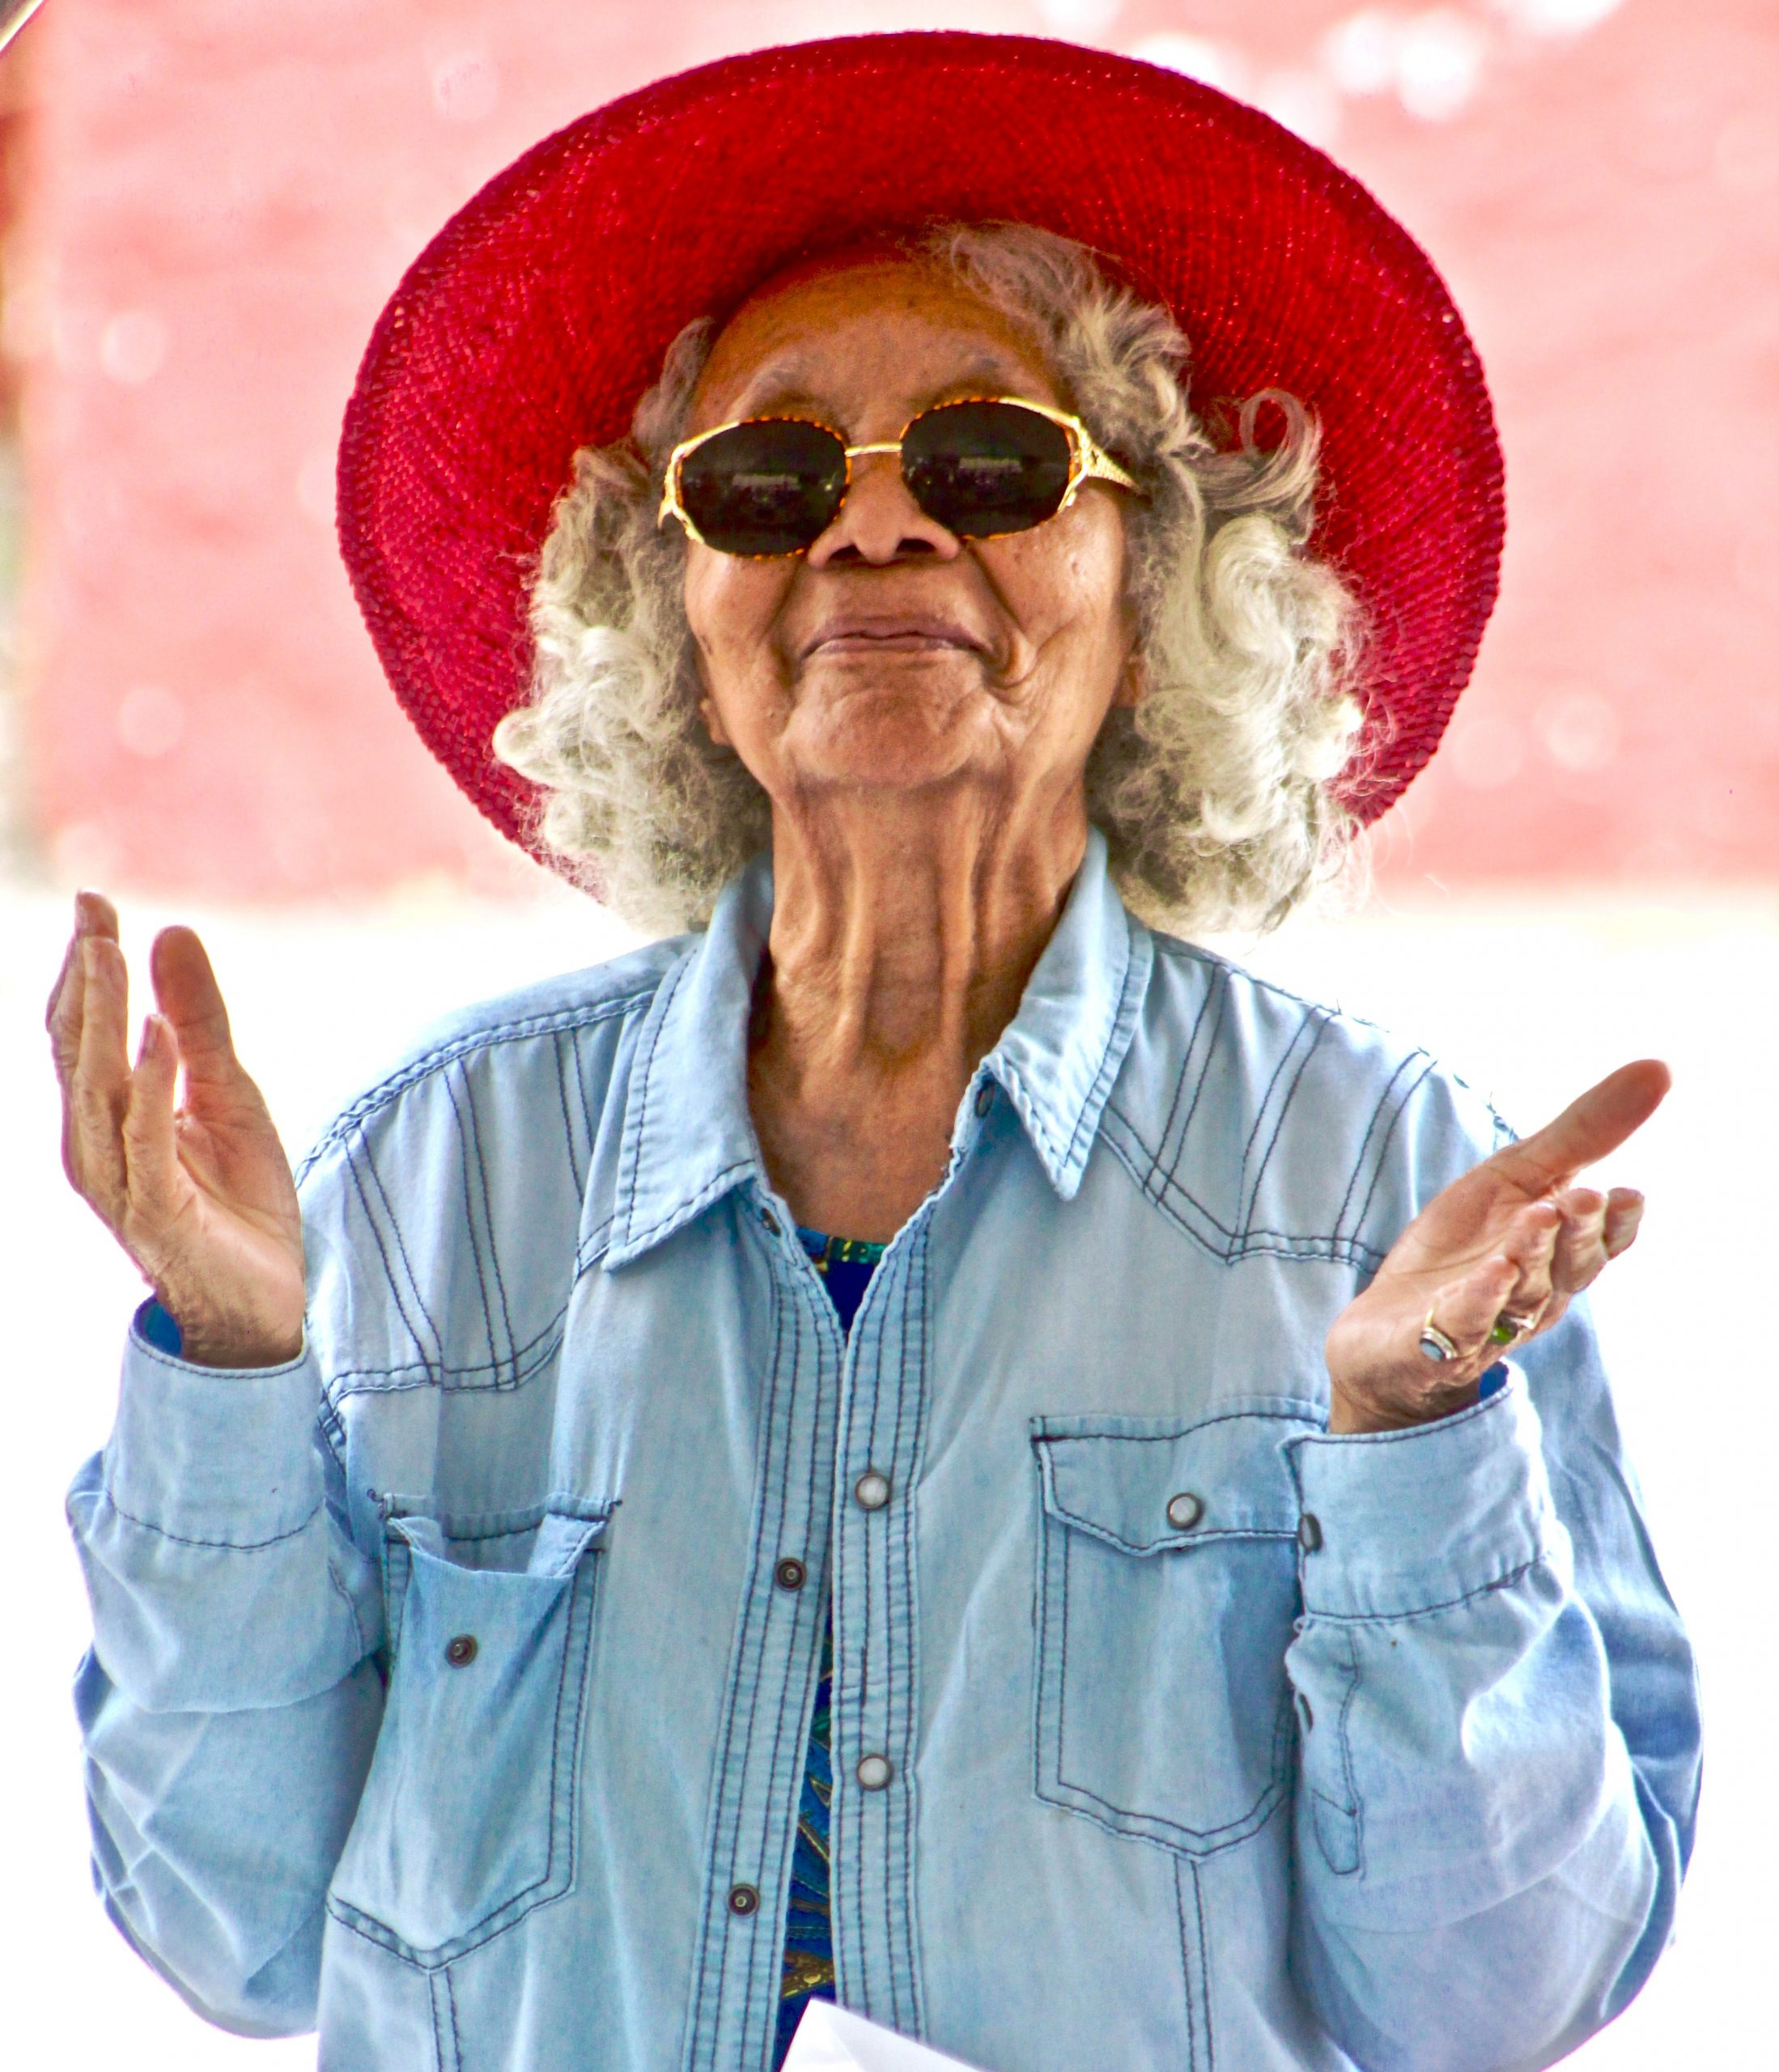 Senior woman with grey curly hair, wearing a blue denim jacket, sunglasses and red hat, smiling with raised hands symbolizing accessibility of food resources for seniors in San Diego.